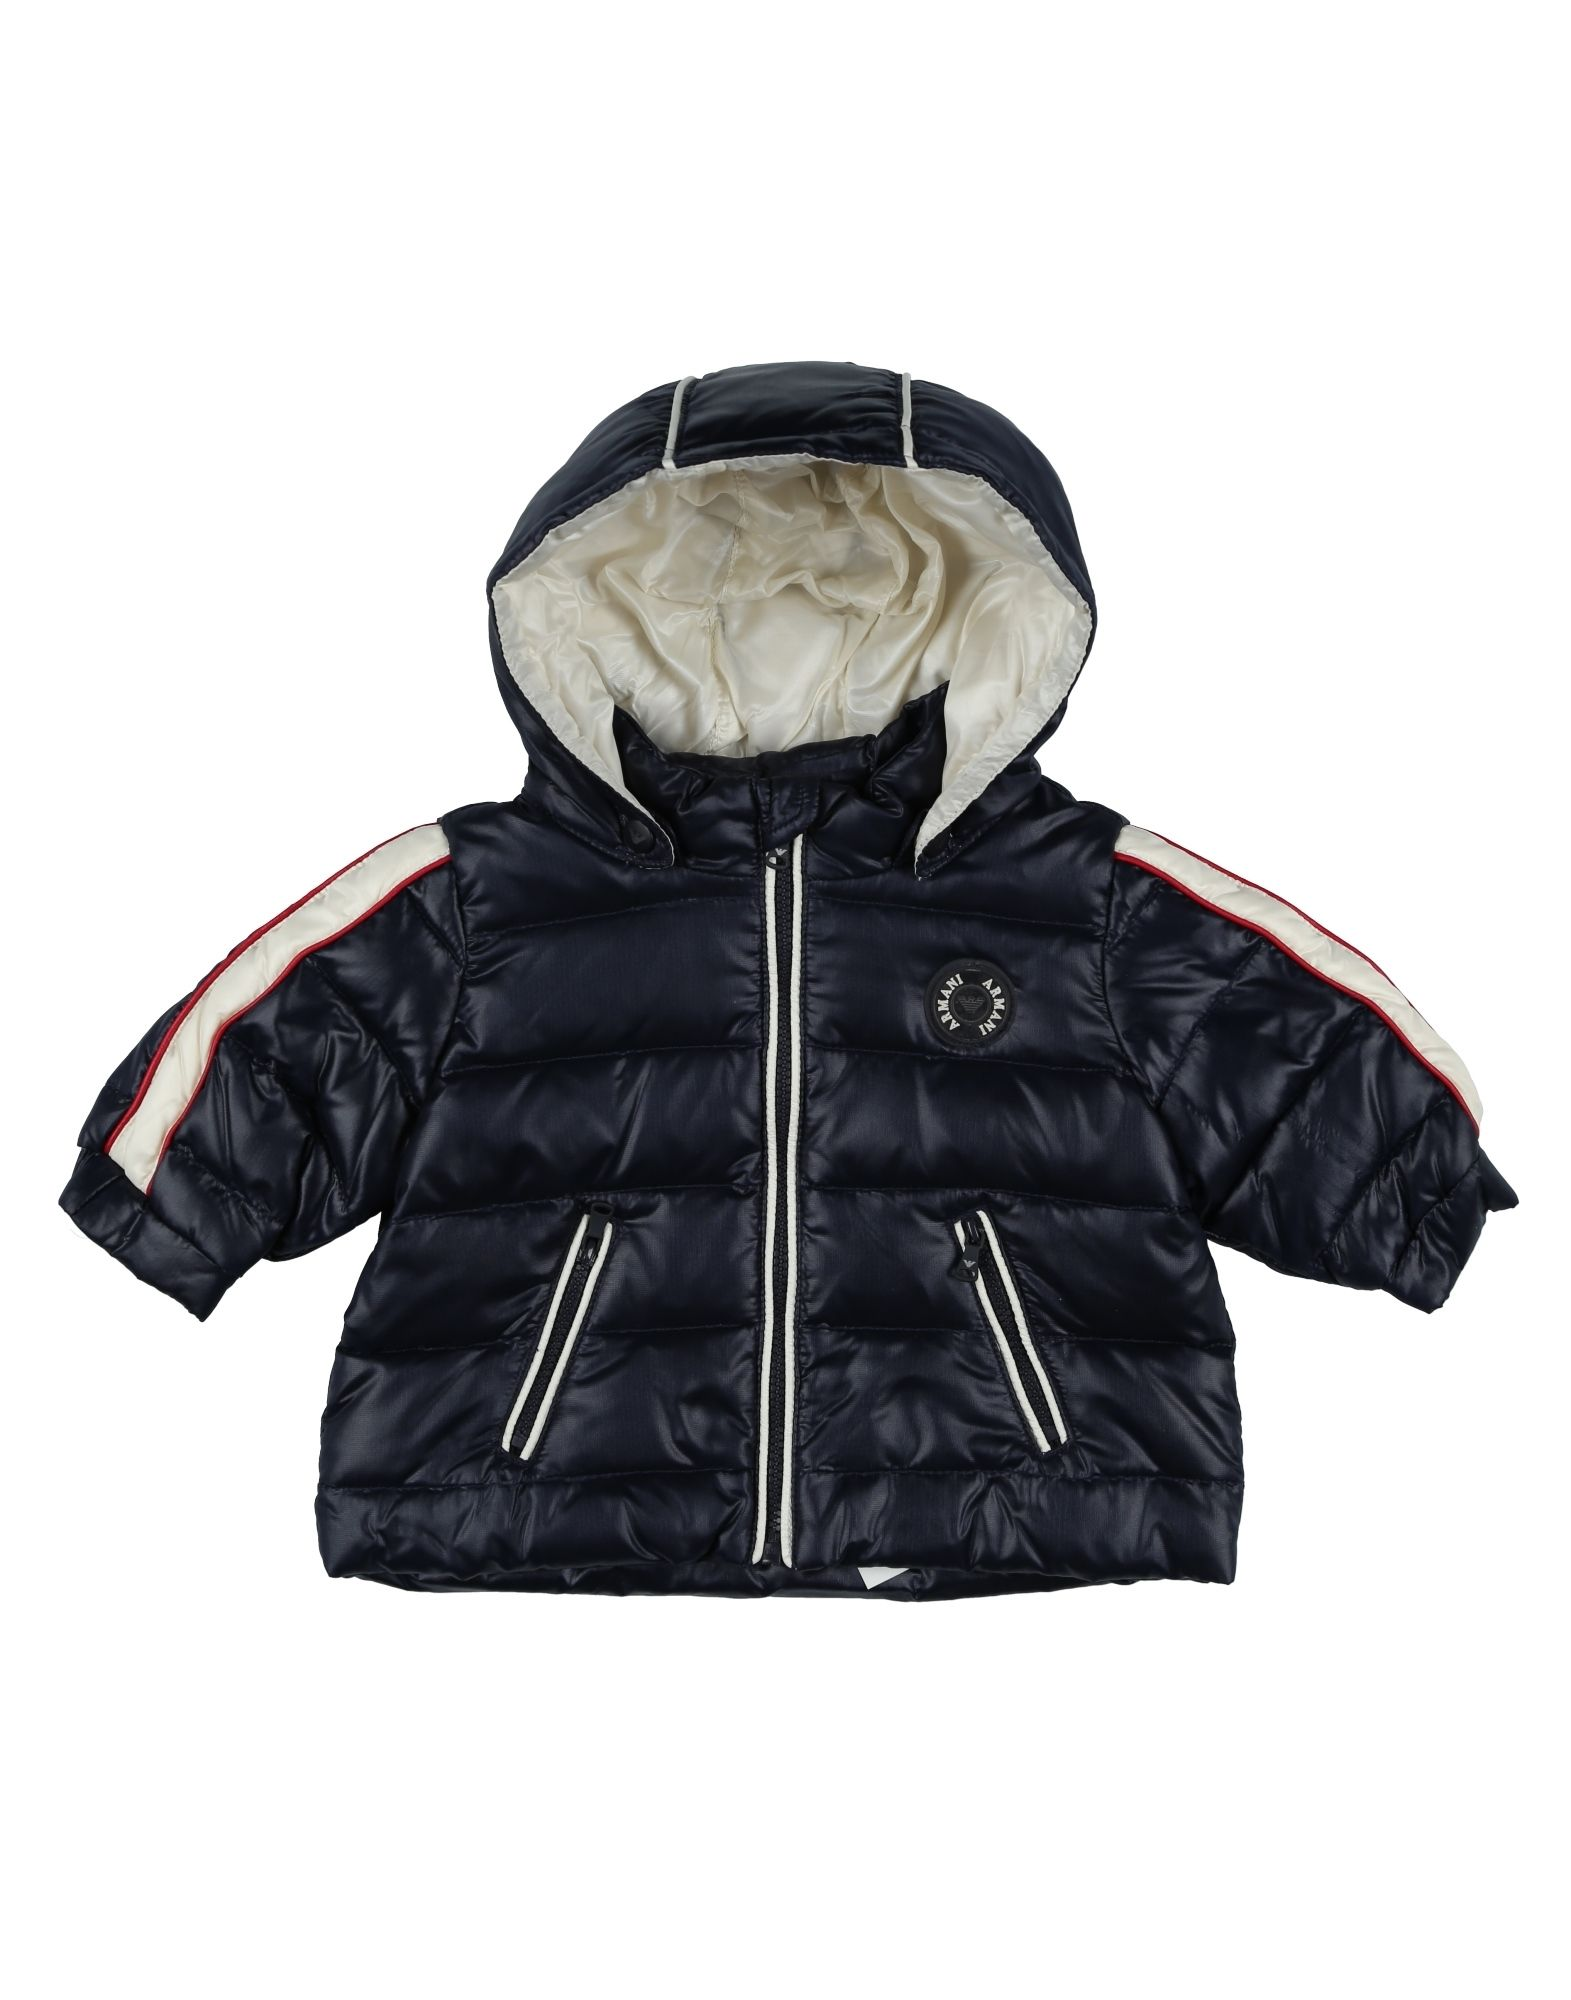 cef84031a1 Armani Junior Down Jackets for baby boy & toddler 0-24 months ...